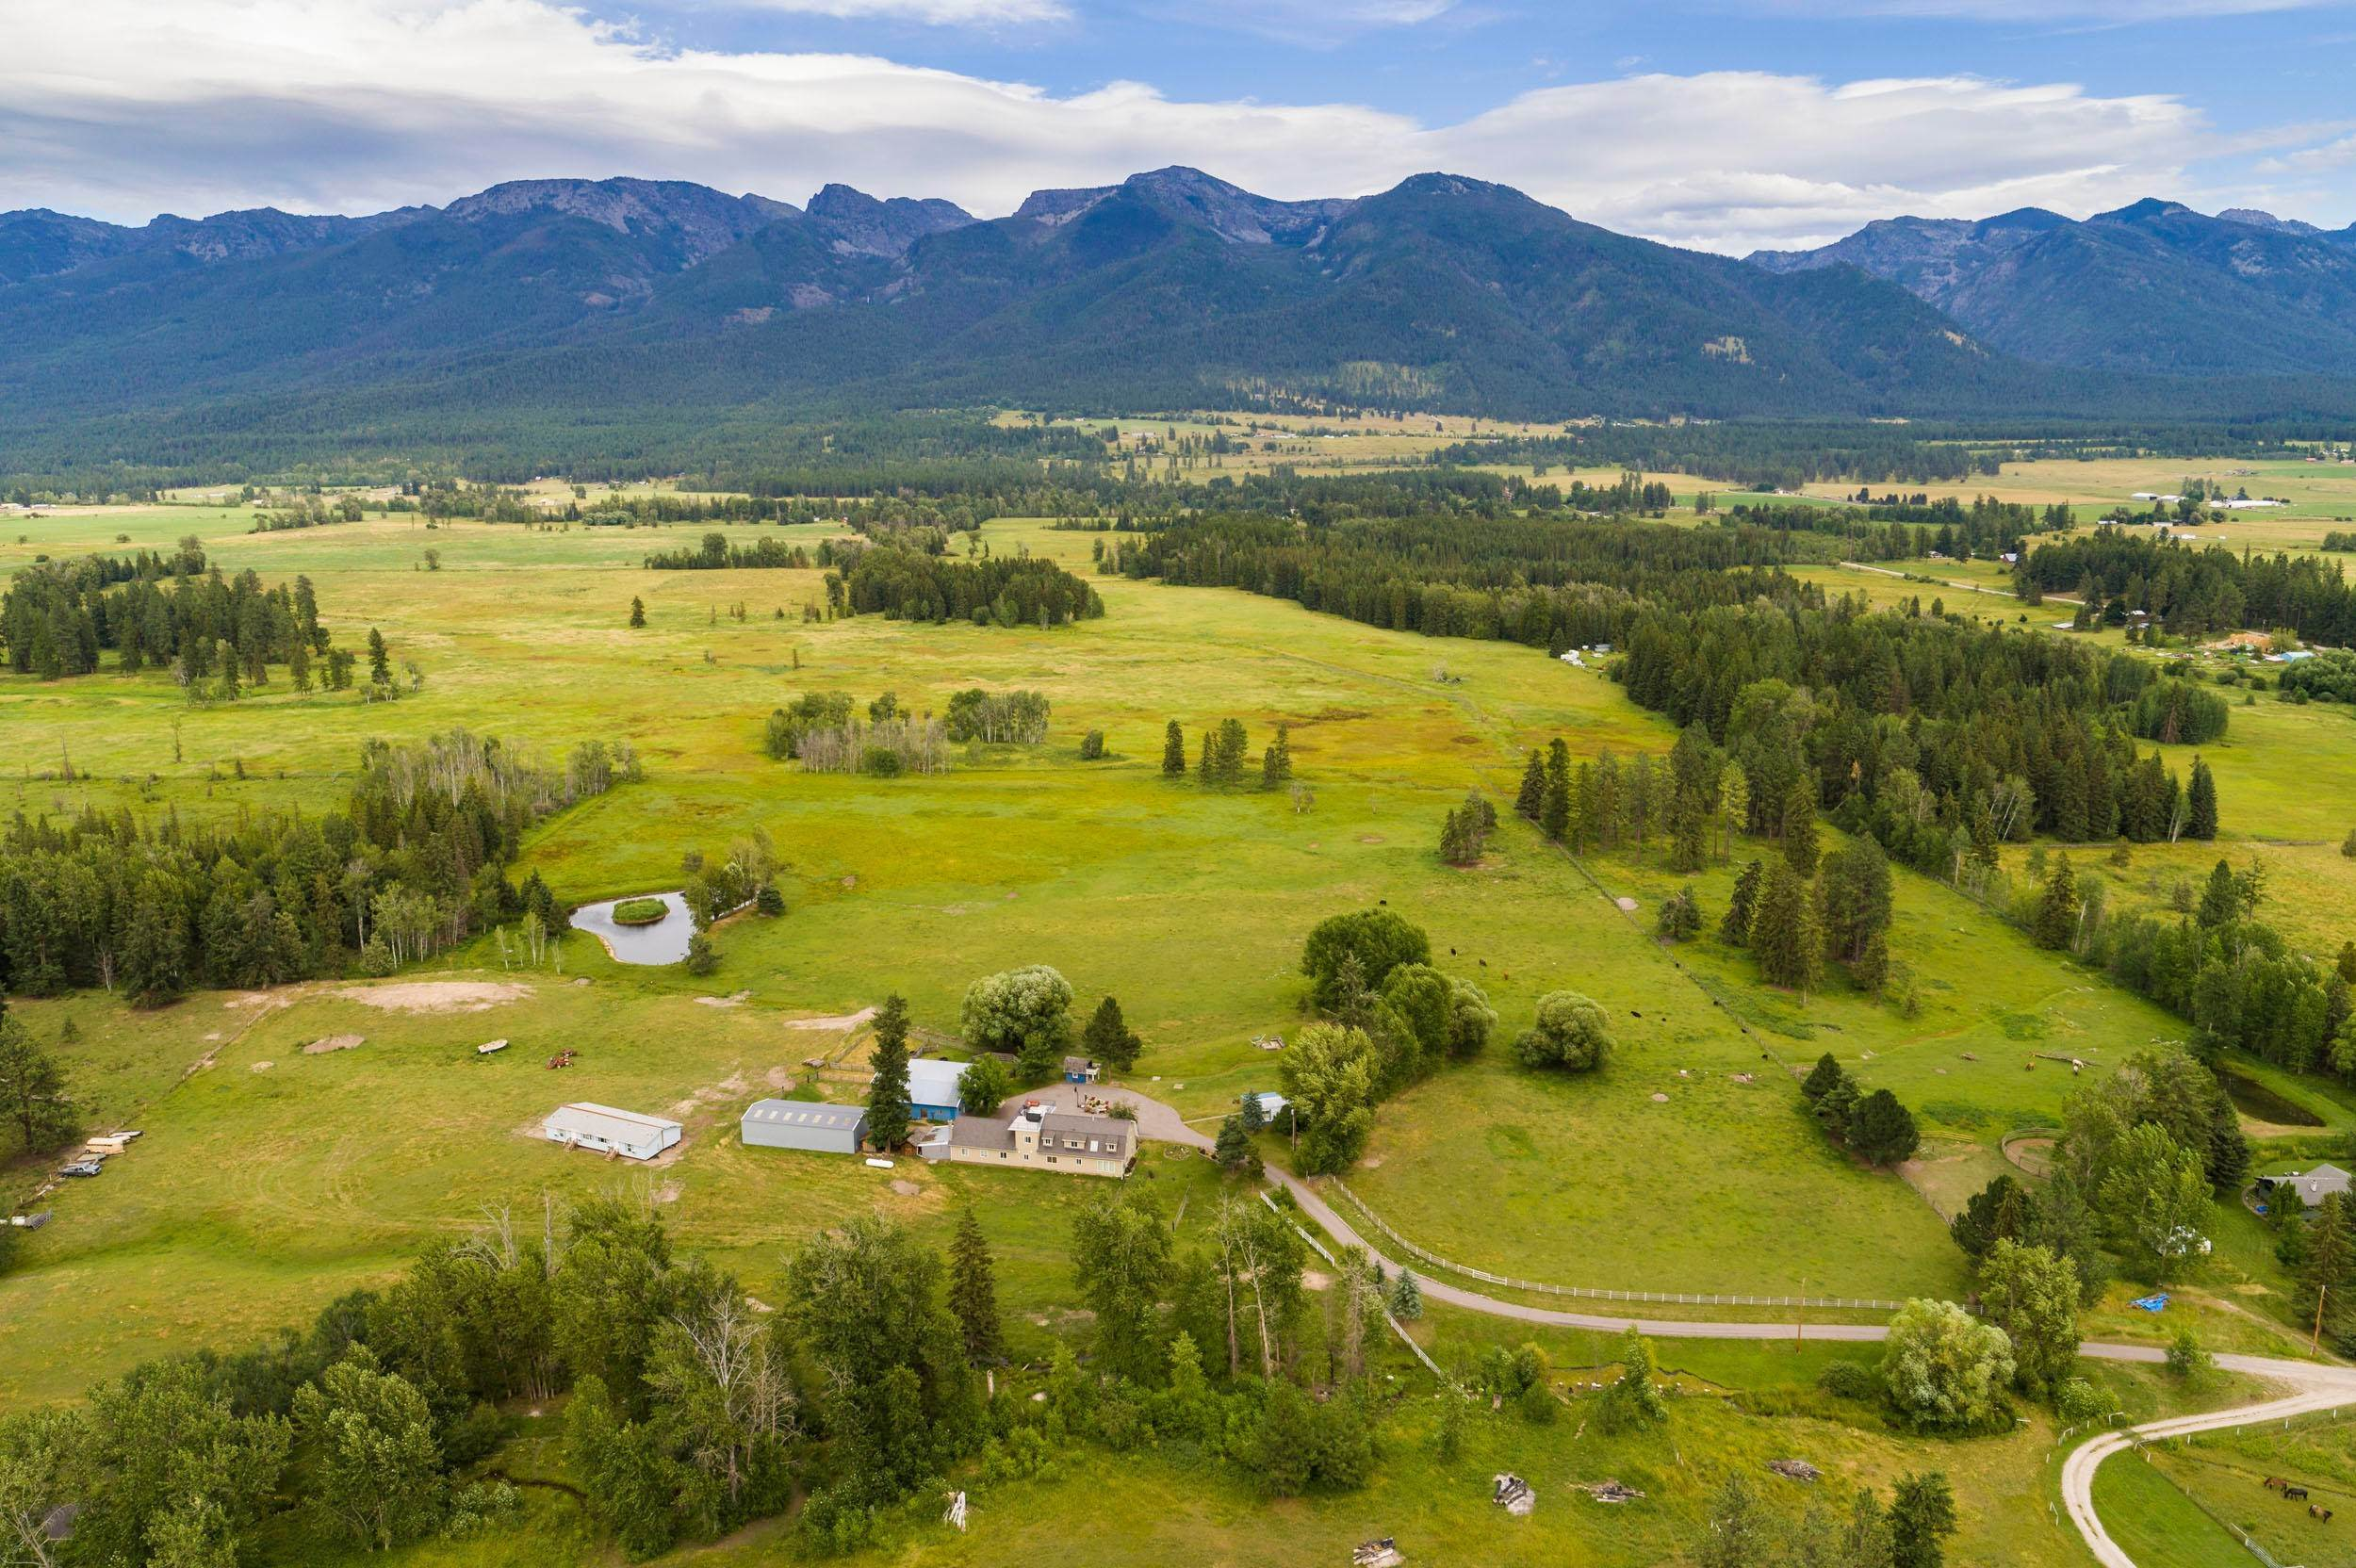 Single Family Homes for Sale at 41724 Trails End Lane Ronan, Montana 59864 United States